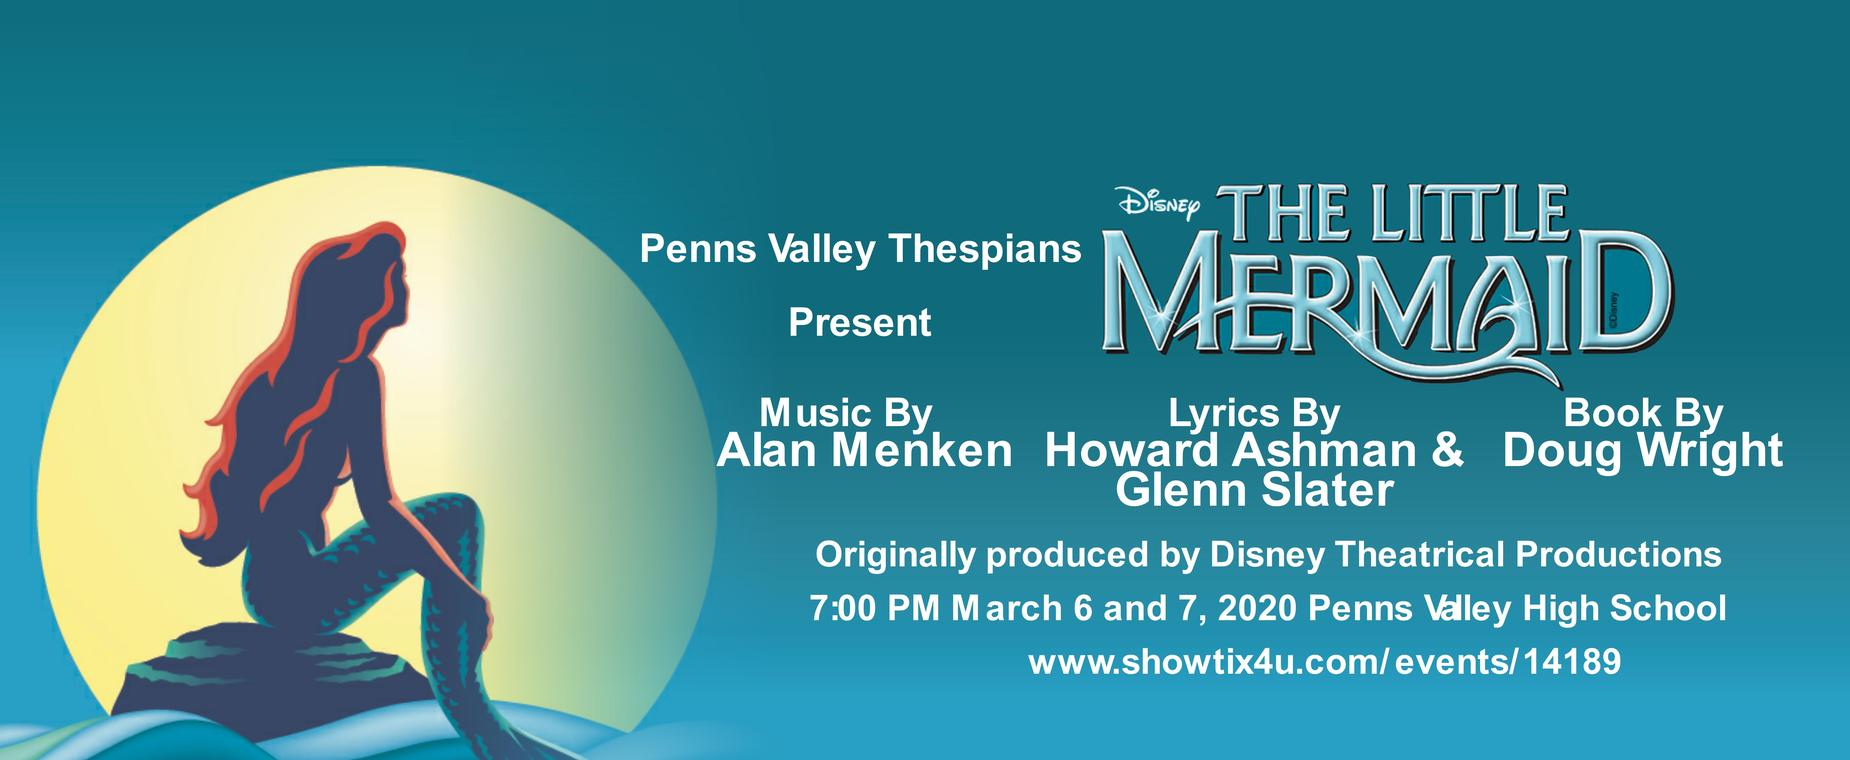 The Little Mermaid March 6 and 7 Penns Valley Thespians at the Penns Valley High School Auditorium